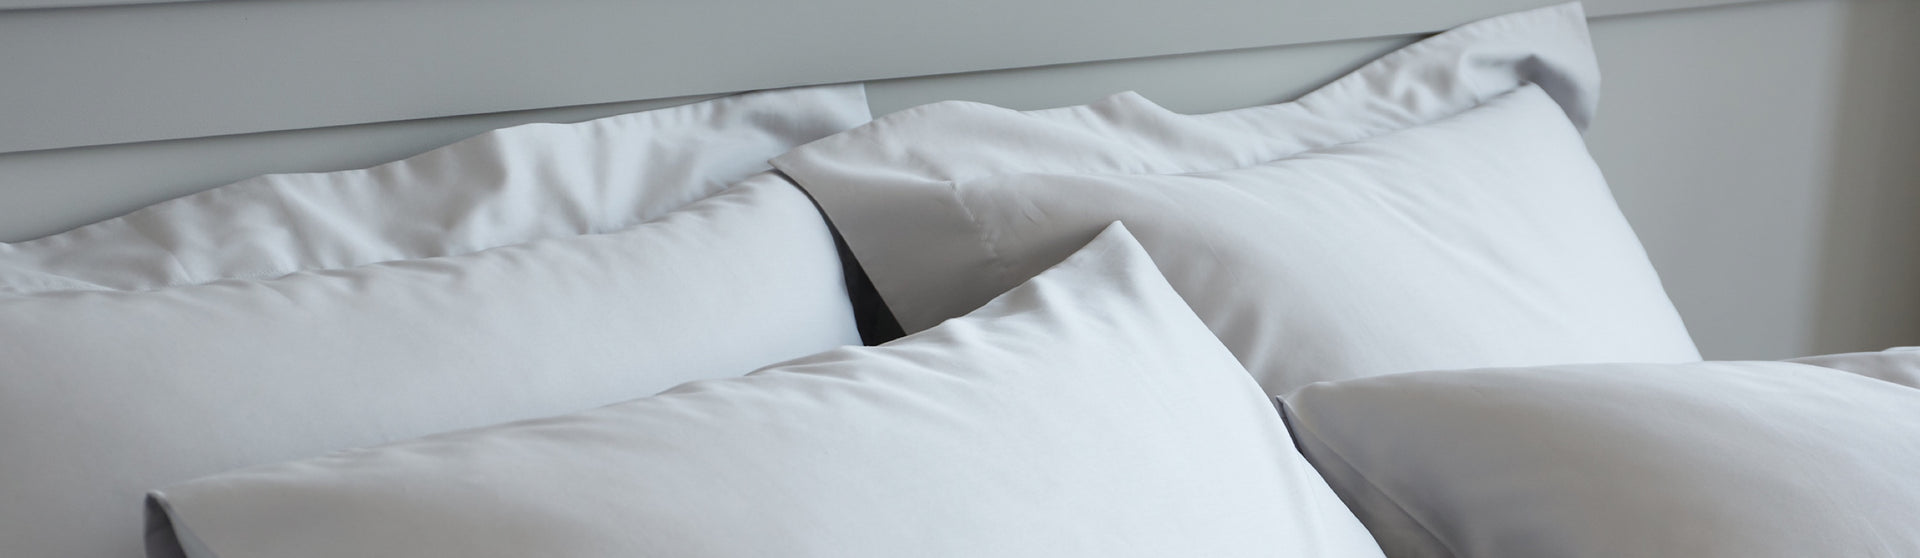 Our simple guide to the complex world of bedding